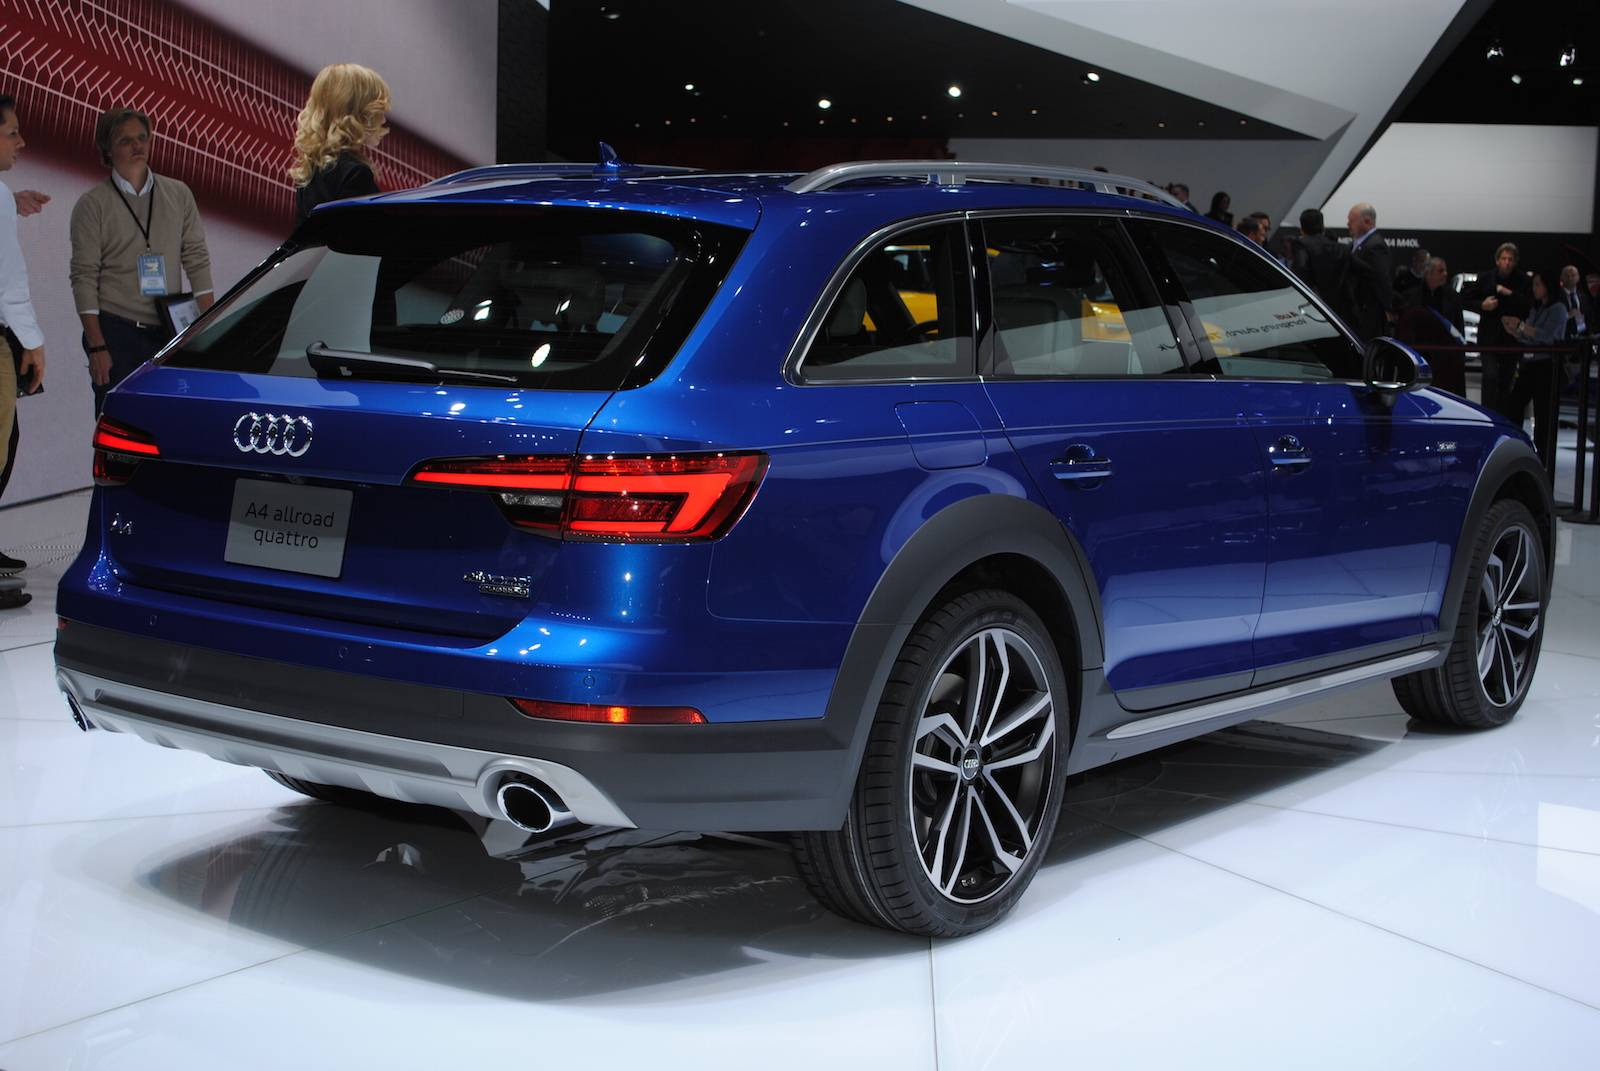 New Generation Audi A4 Allroad Quattro Unveiled At 2016 Detroit Motor Show 4